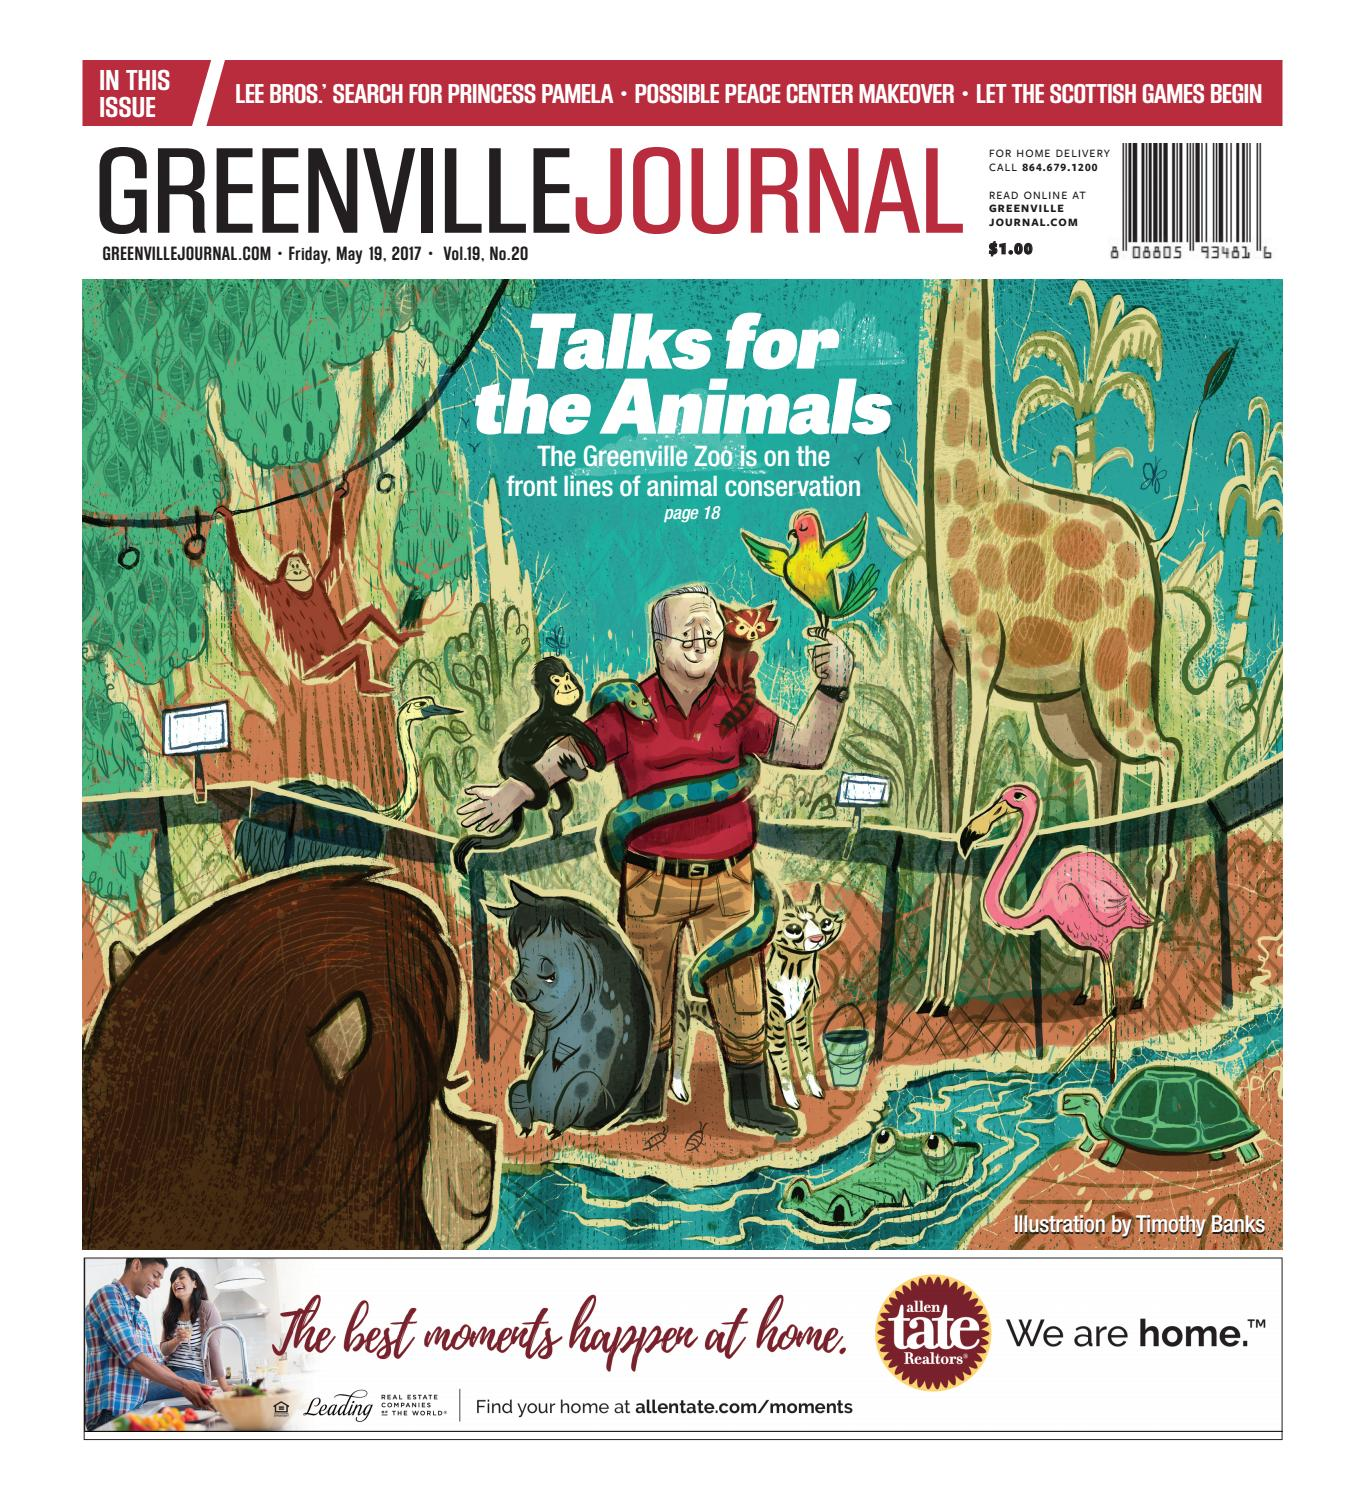 May 19 2017 Greenville Journal by munity Journals issuu